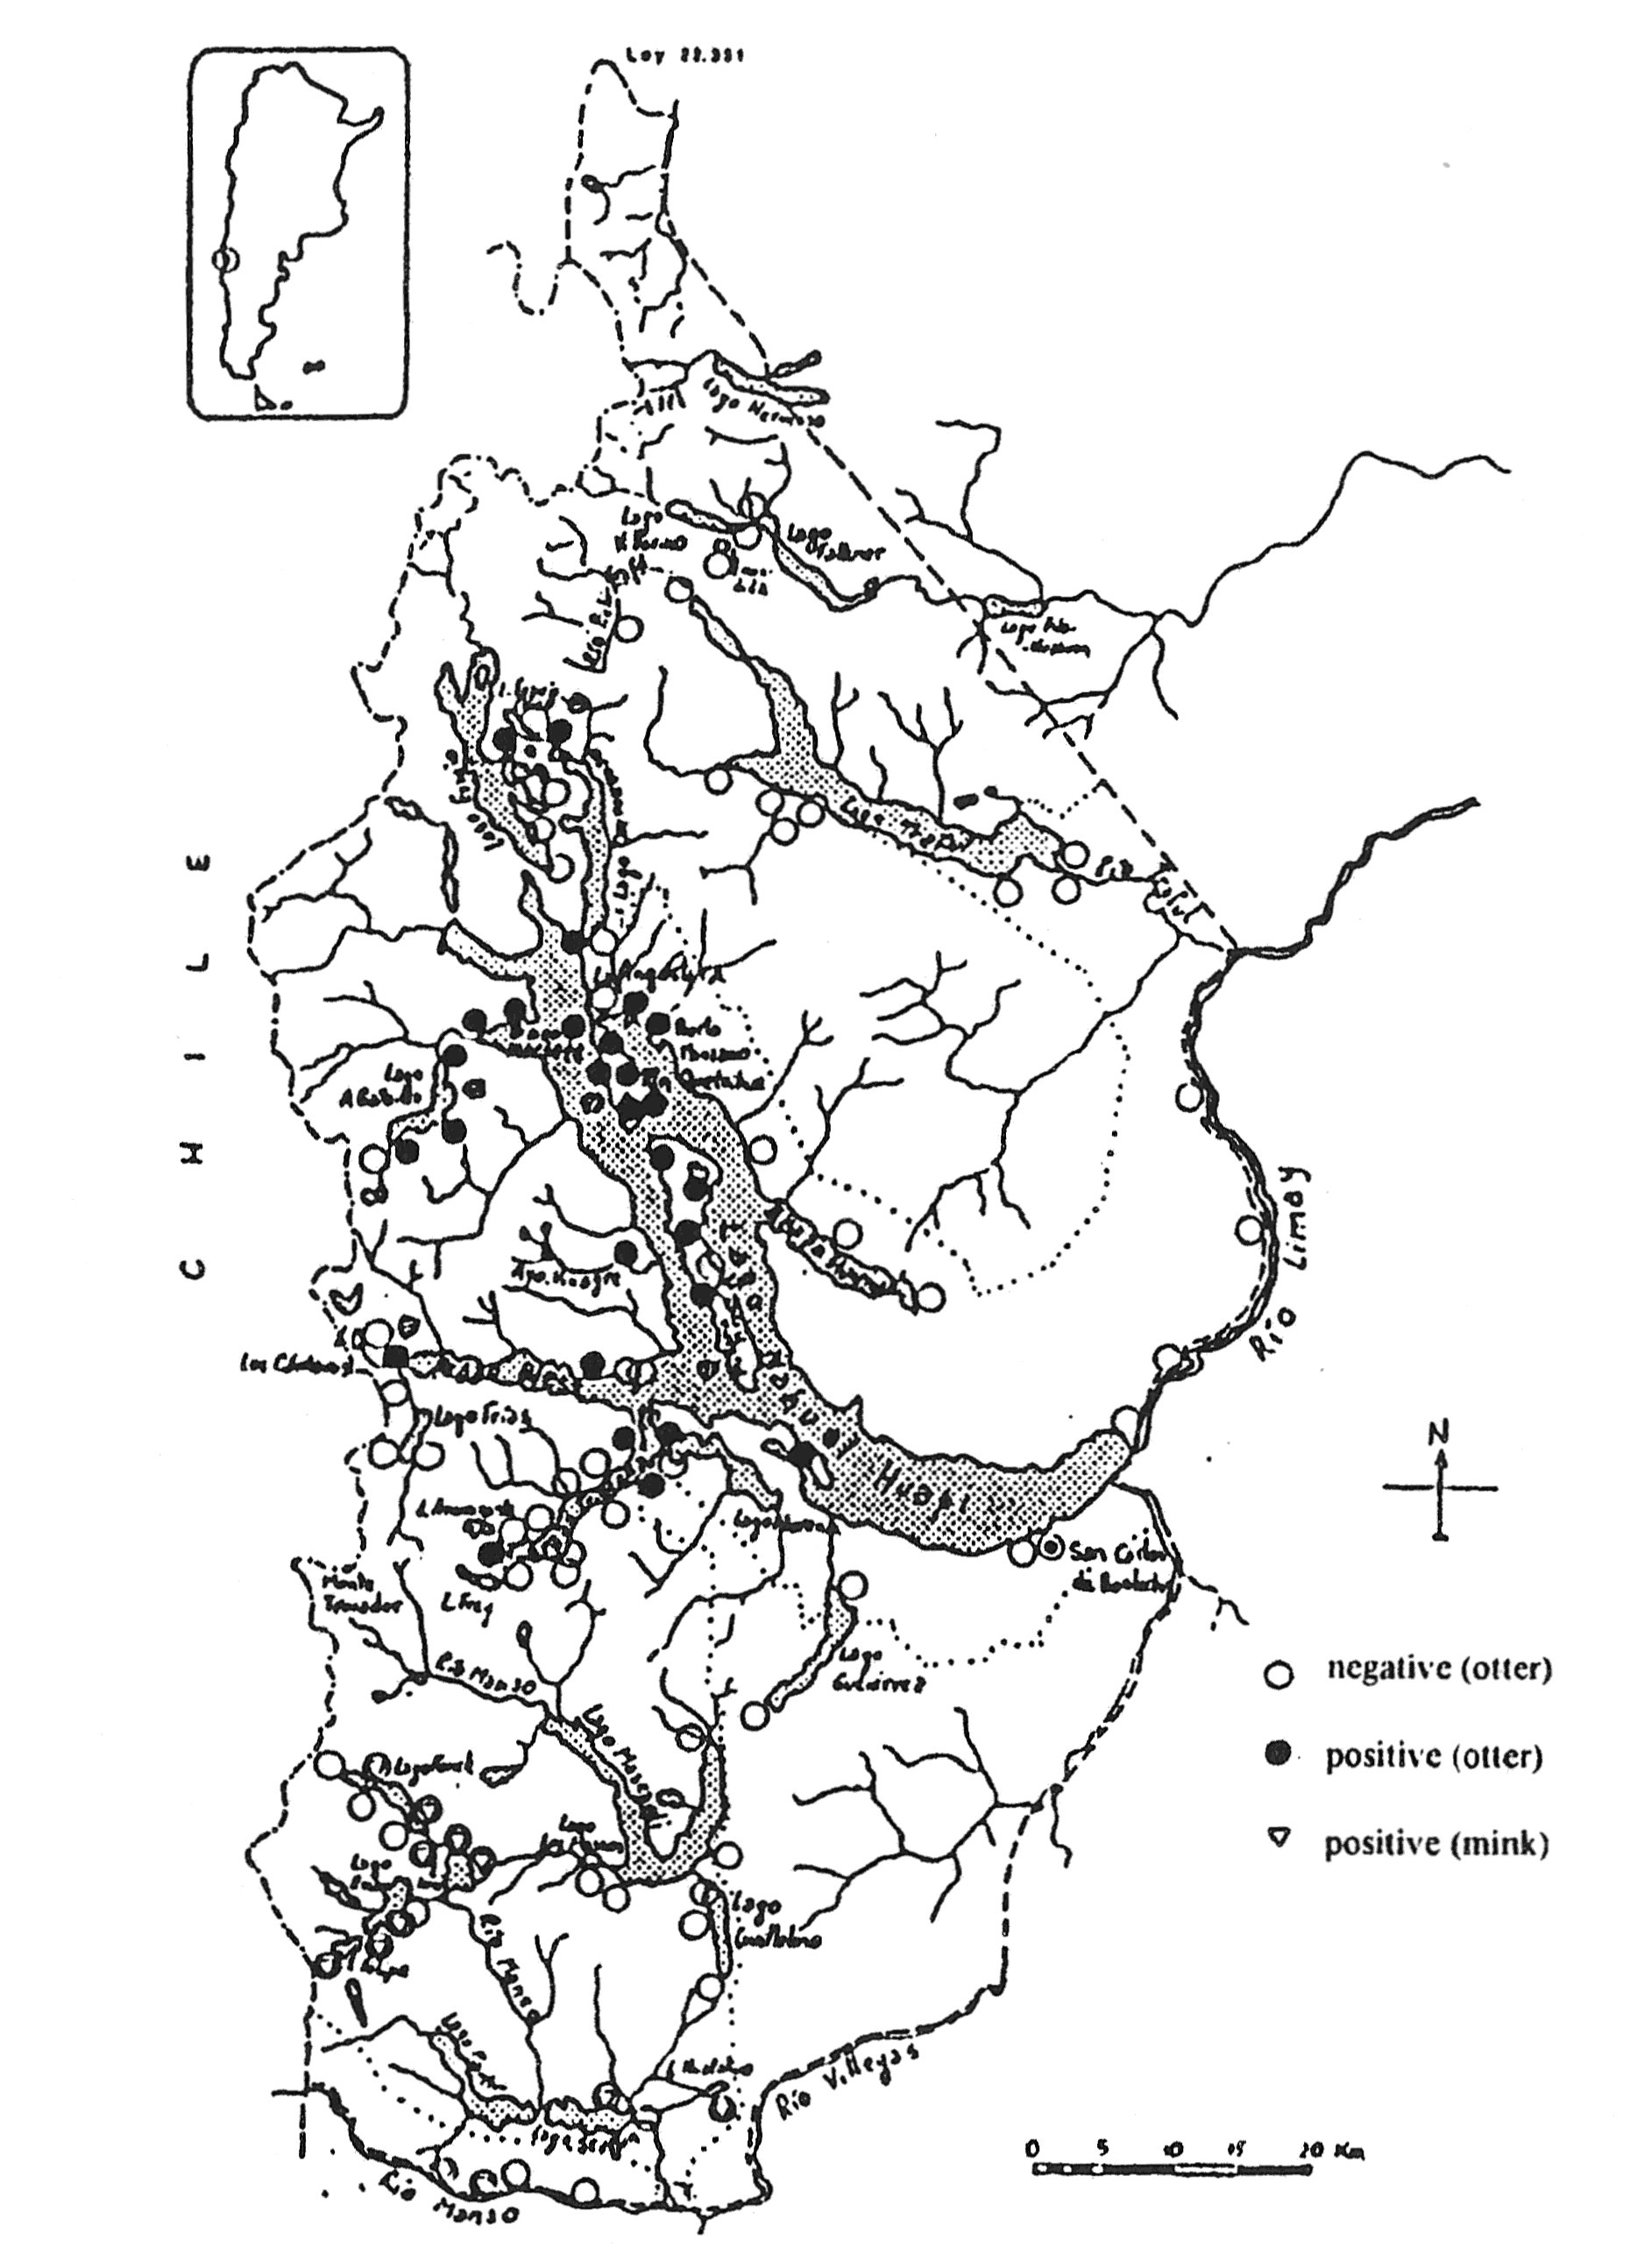 Porro G And Chehébar C Monitoring The Distribution And - Argentina political map 1996